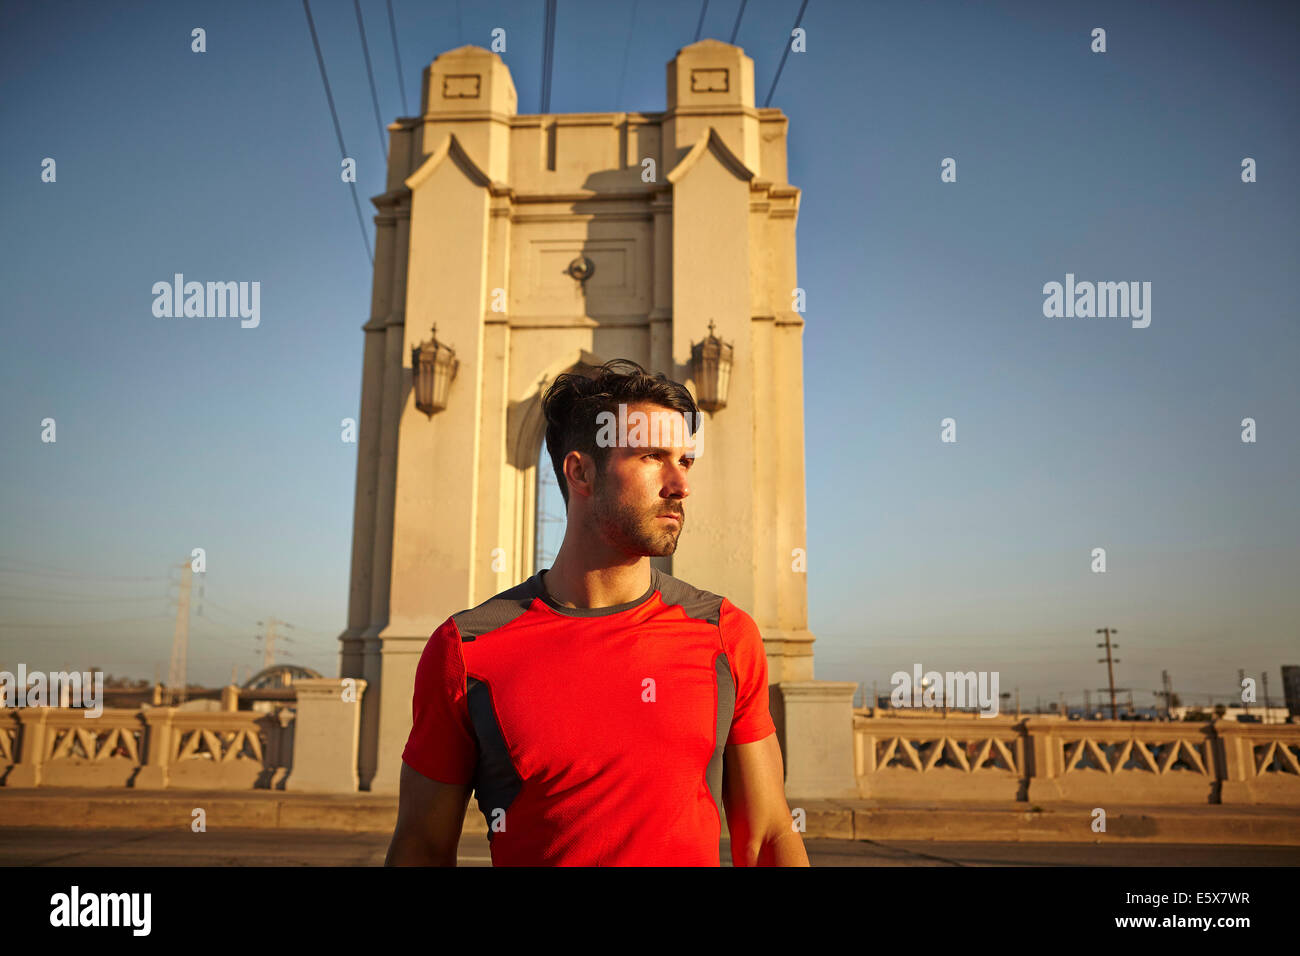 Young male runner en faisant une pause au pont de la ville Photo Stock